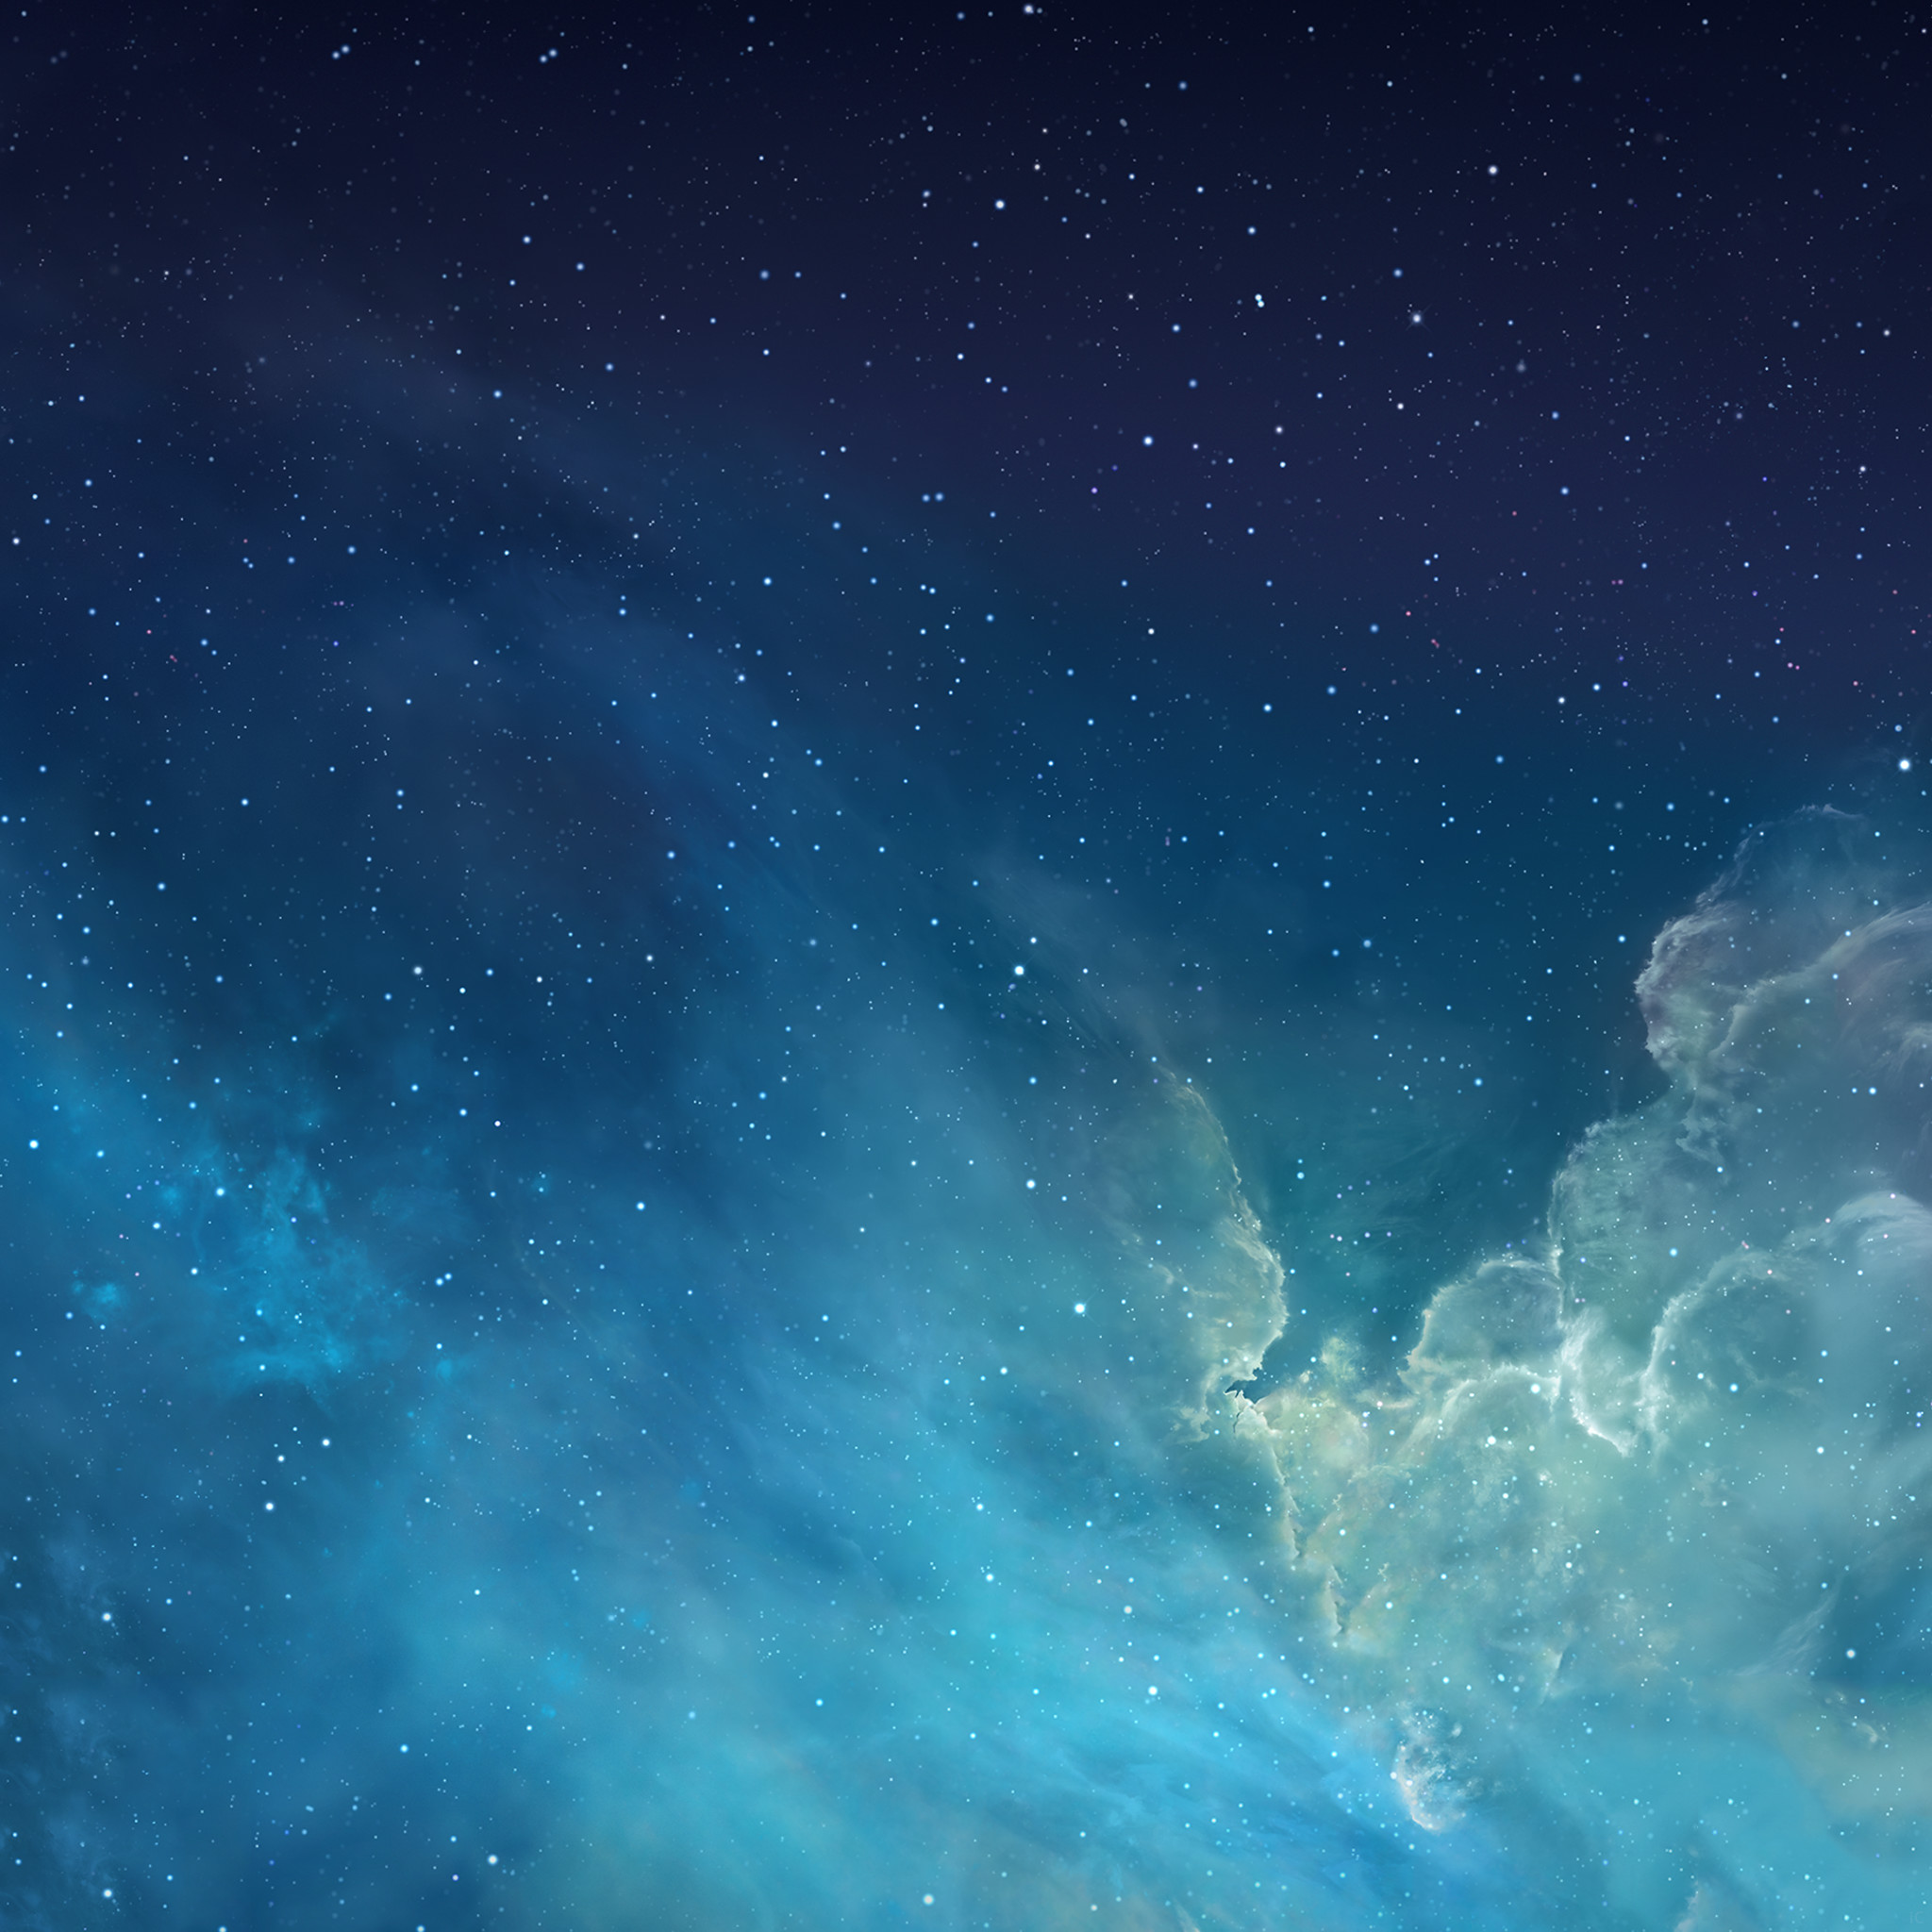 Download the New iOS 7 Wallpaper Backgrounds for iPad Here [Images] –  iClarified